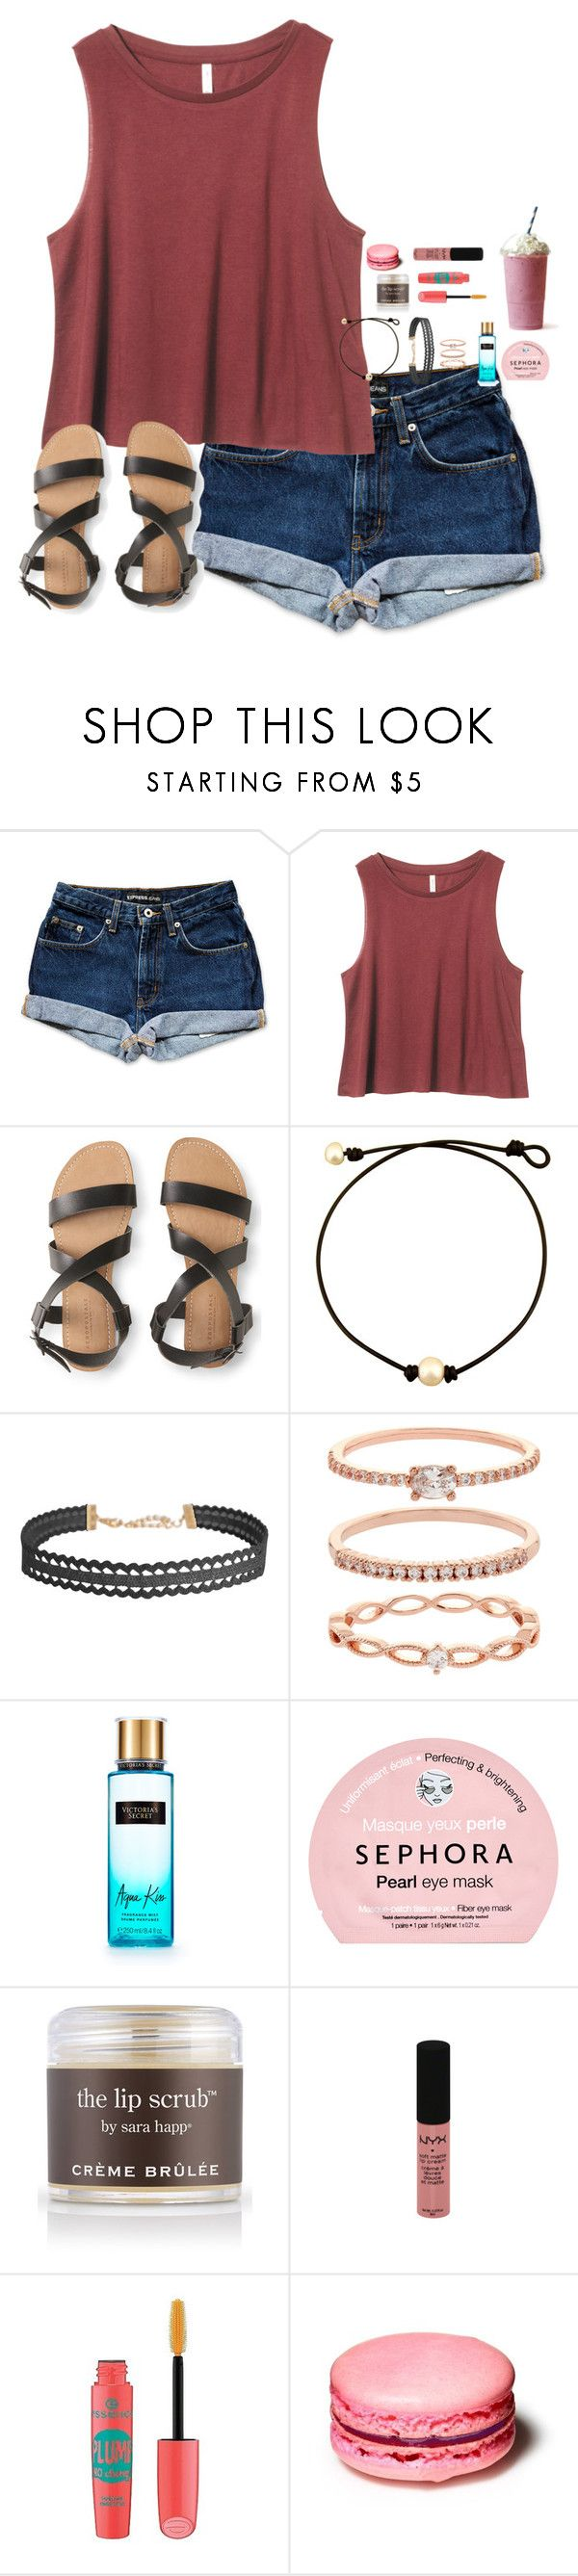 """""""sorry I was gone, i didn't have a good signal"""" by simplyytorii ❤ liked on Polyvore featuring Aéropostale, Humble Chic, Accessorize, Victoria's Secret, Sephora Collection, Sara Happ, NYX and Essence"""